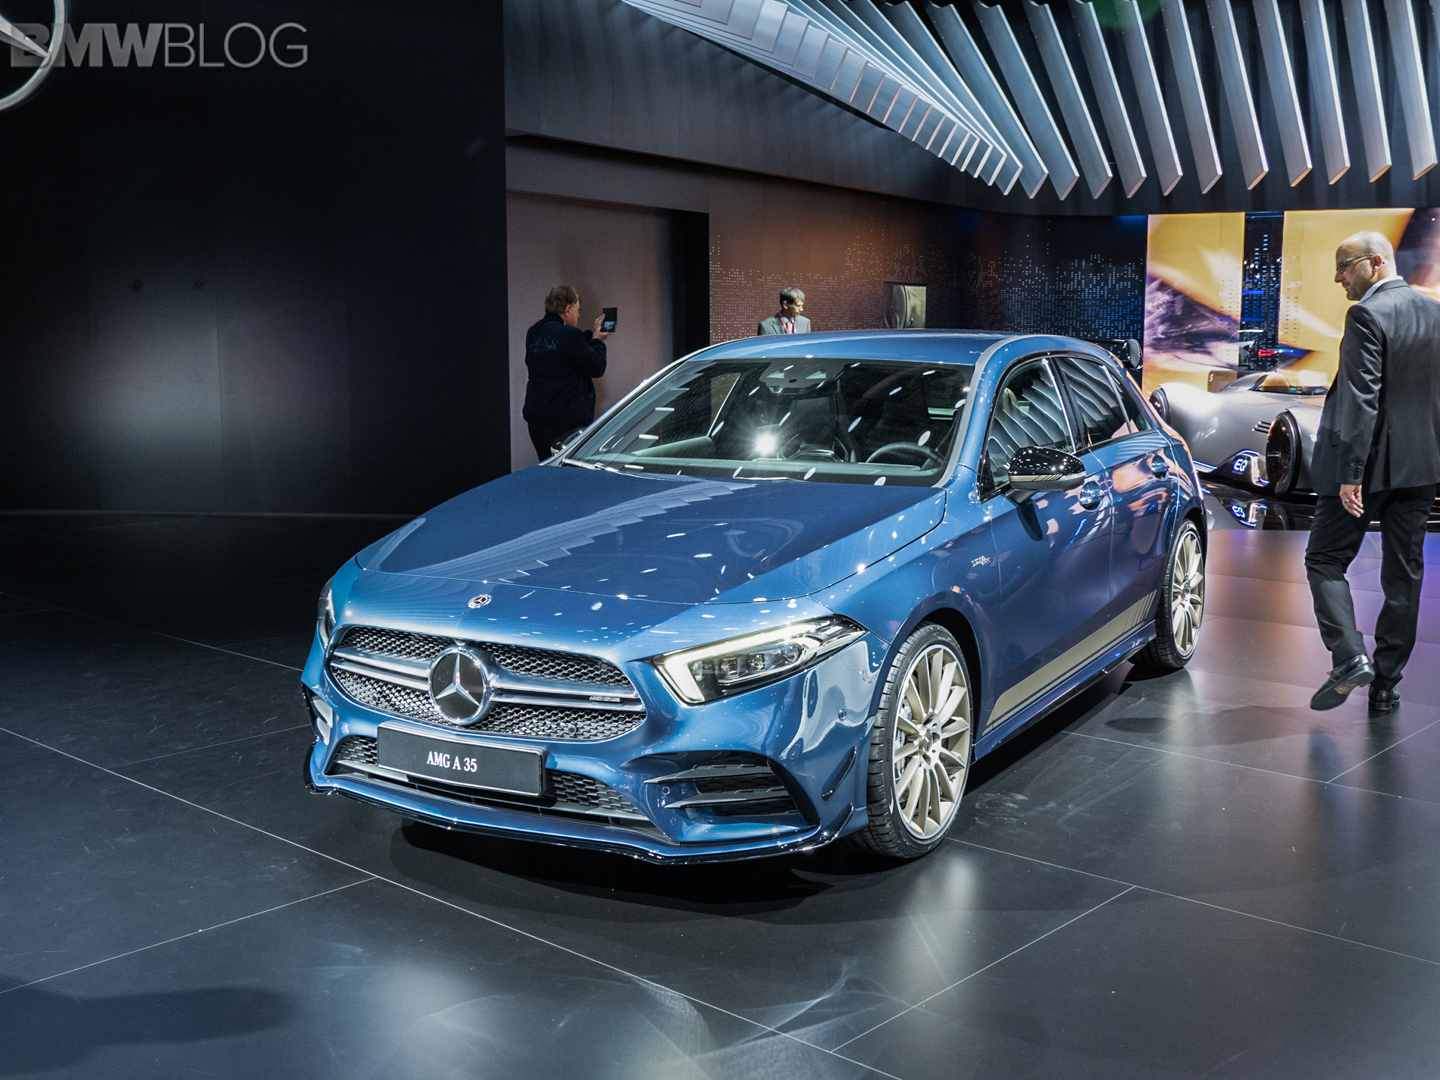 paris motor show mercedes amg a35 arrives to take on bmw m140i. Black Bedroom Furniture Sets. Home Design Ideas